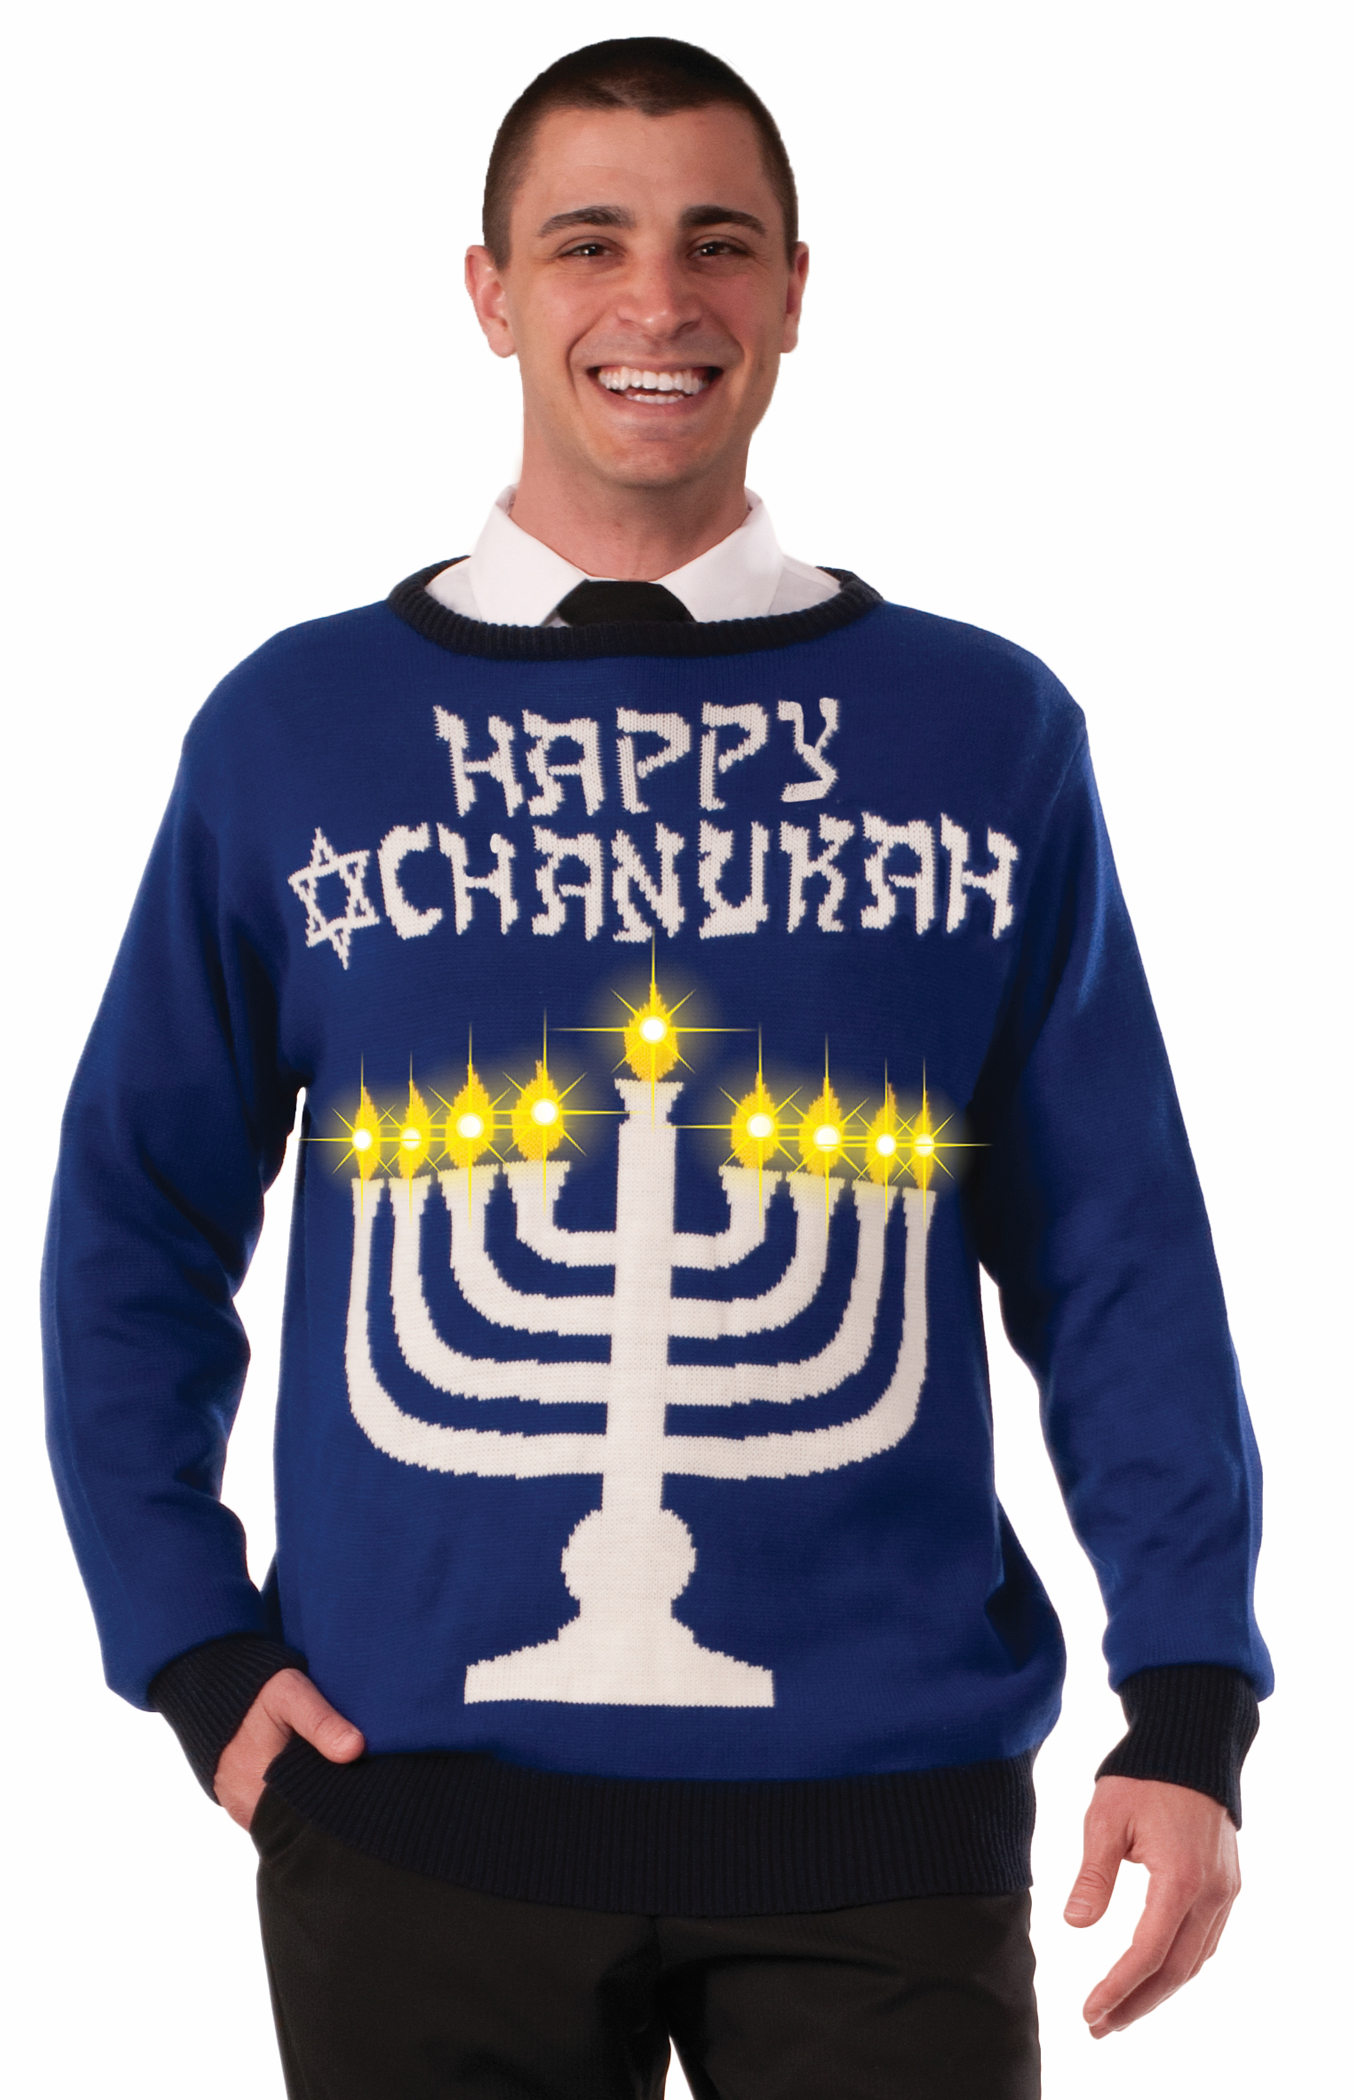 Forum Chanukah Light Up Menorah Ugly Christmas Sweater, Blue White